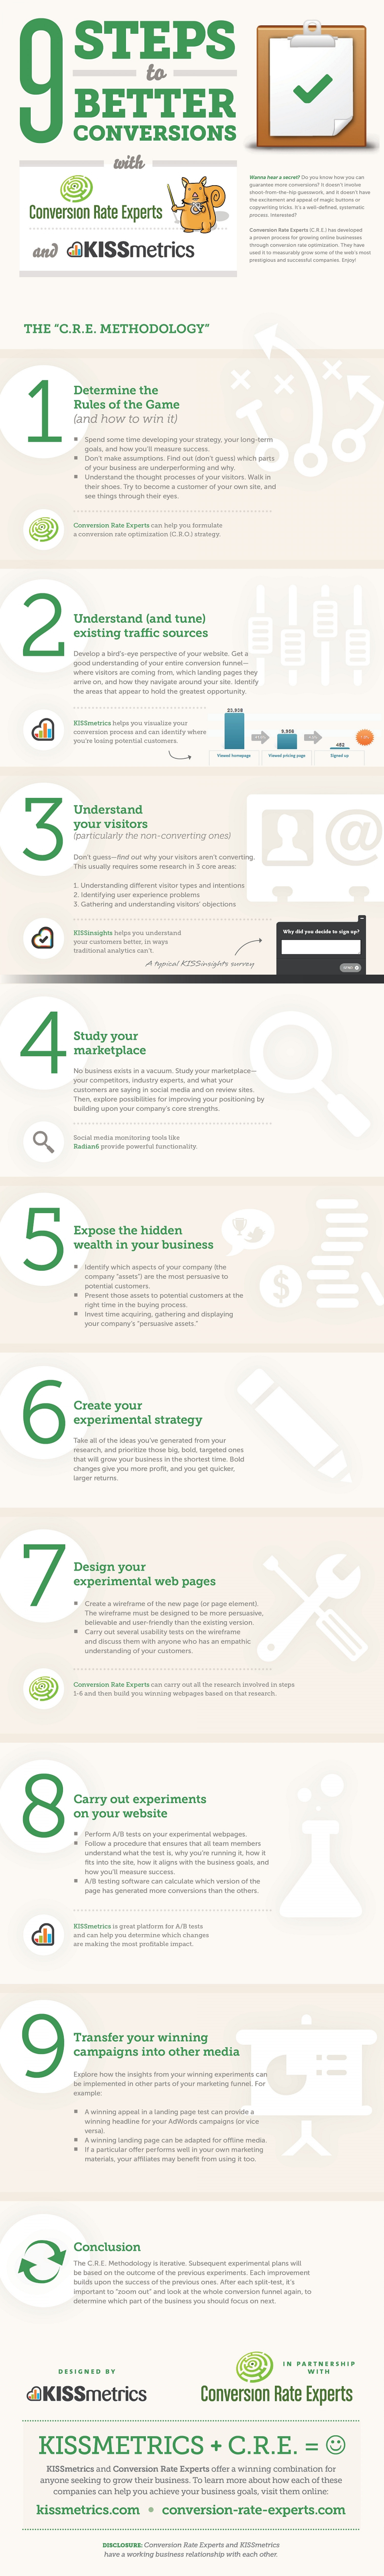 9 Steps to Better Conversions Infographic